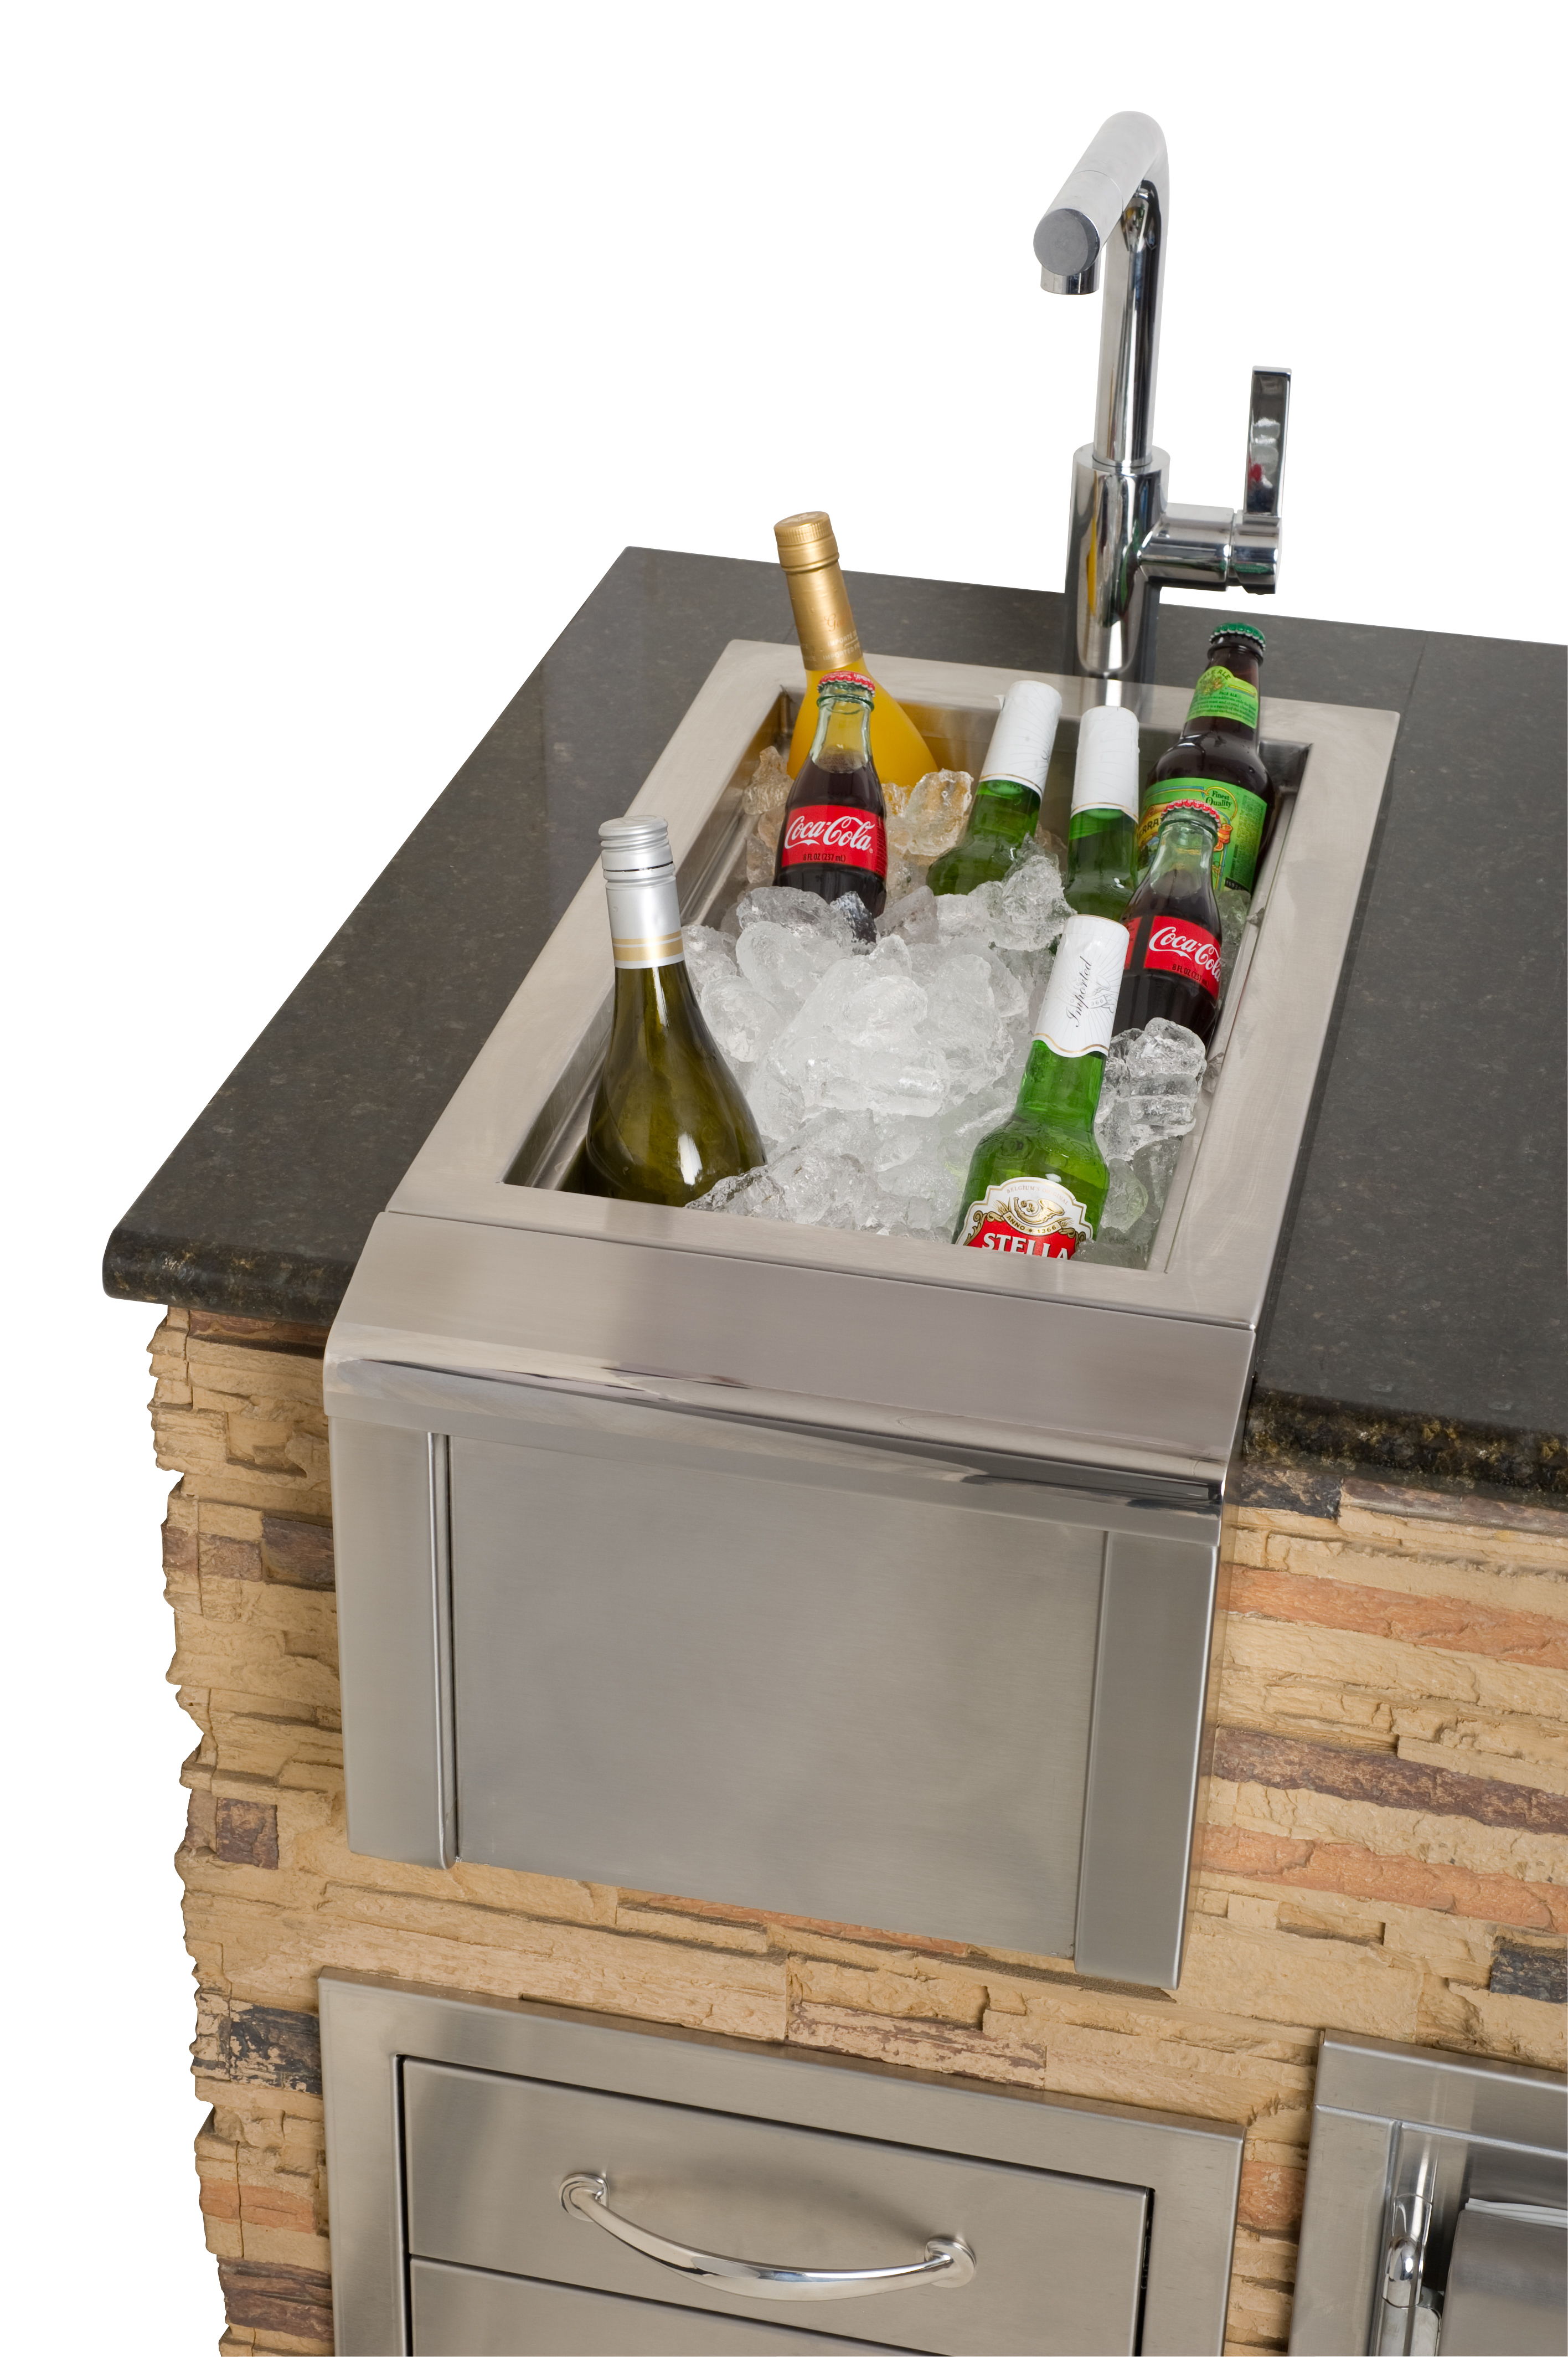 7382697490 3e6ae98094 O Las Vegas Outdoor Kitchens And Barbecues